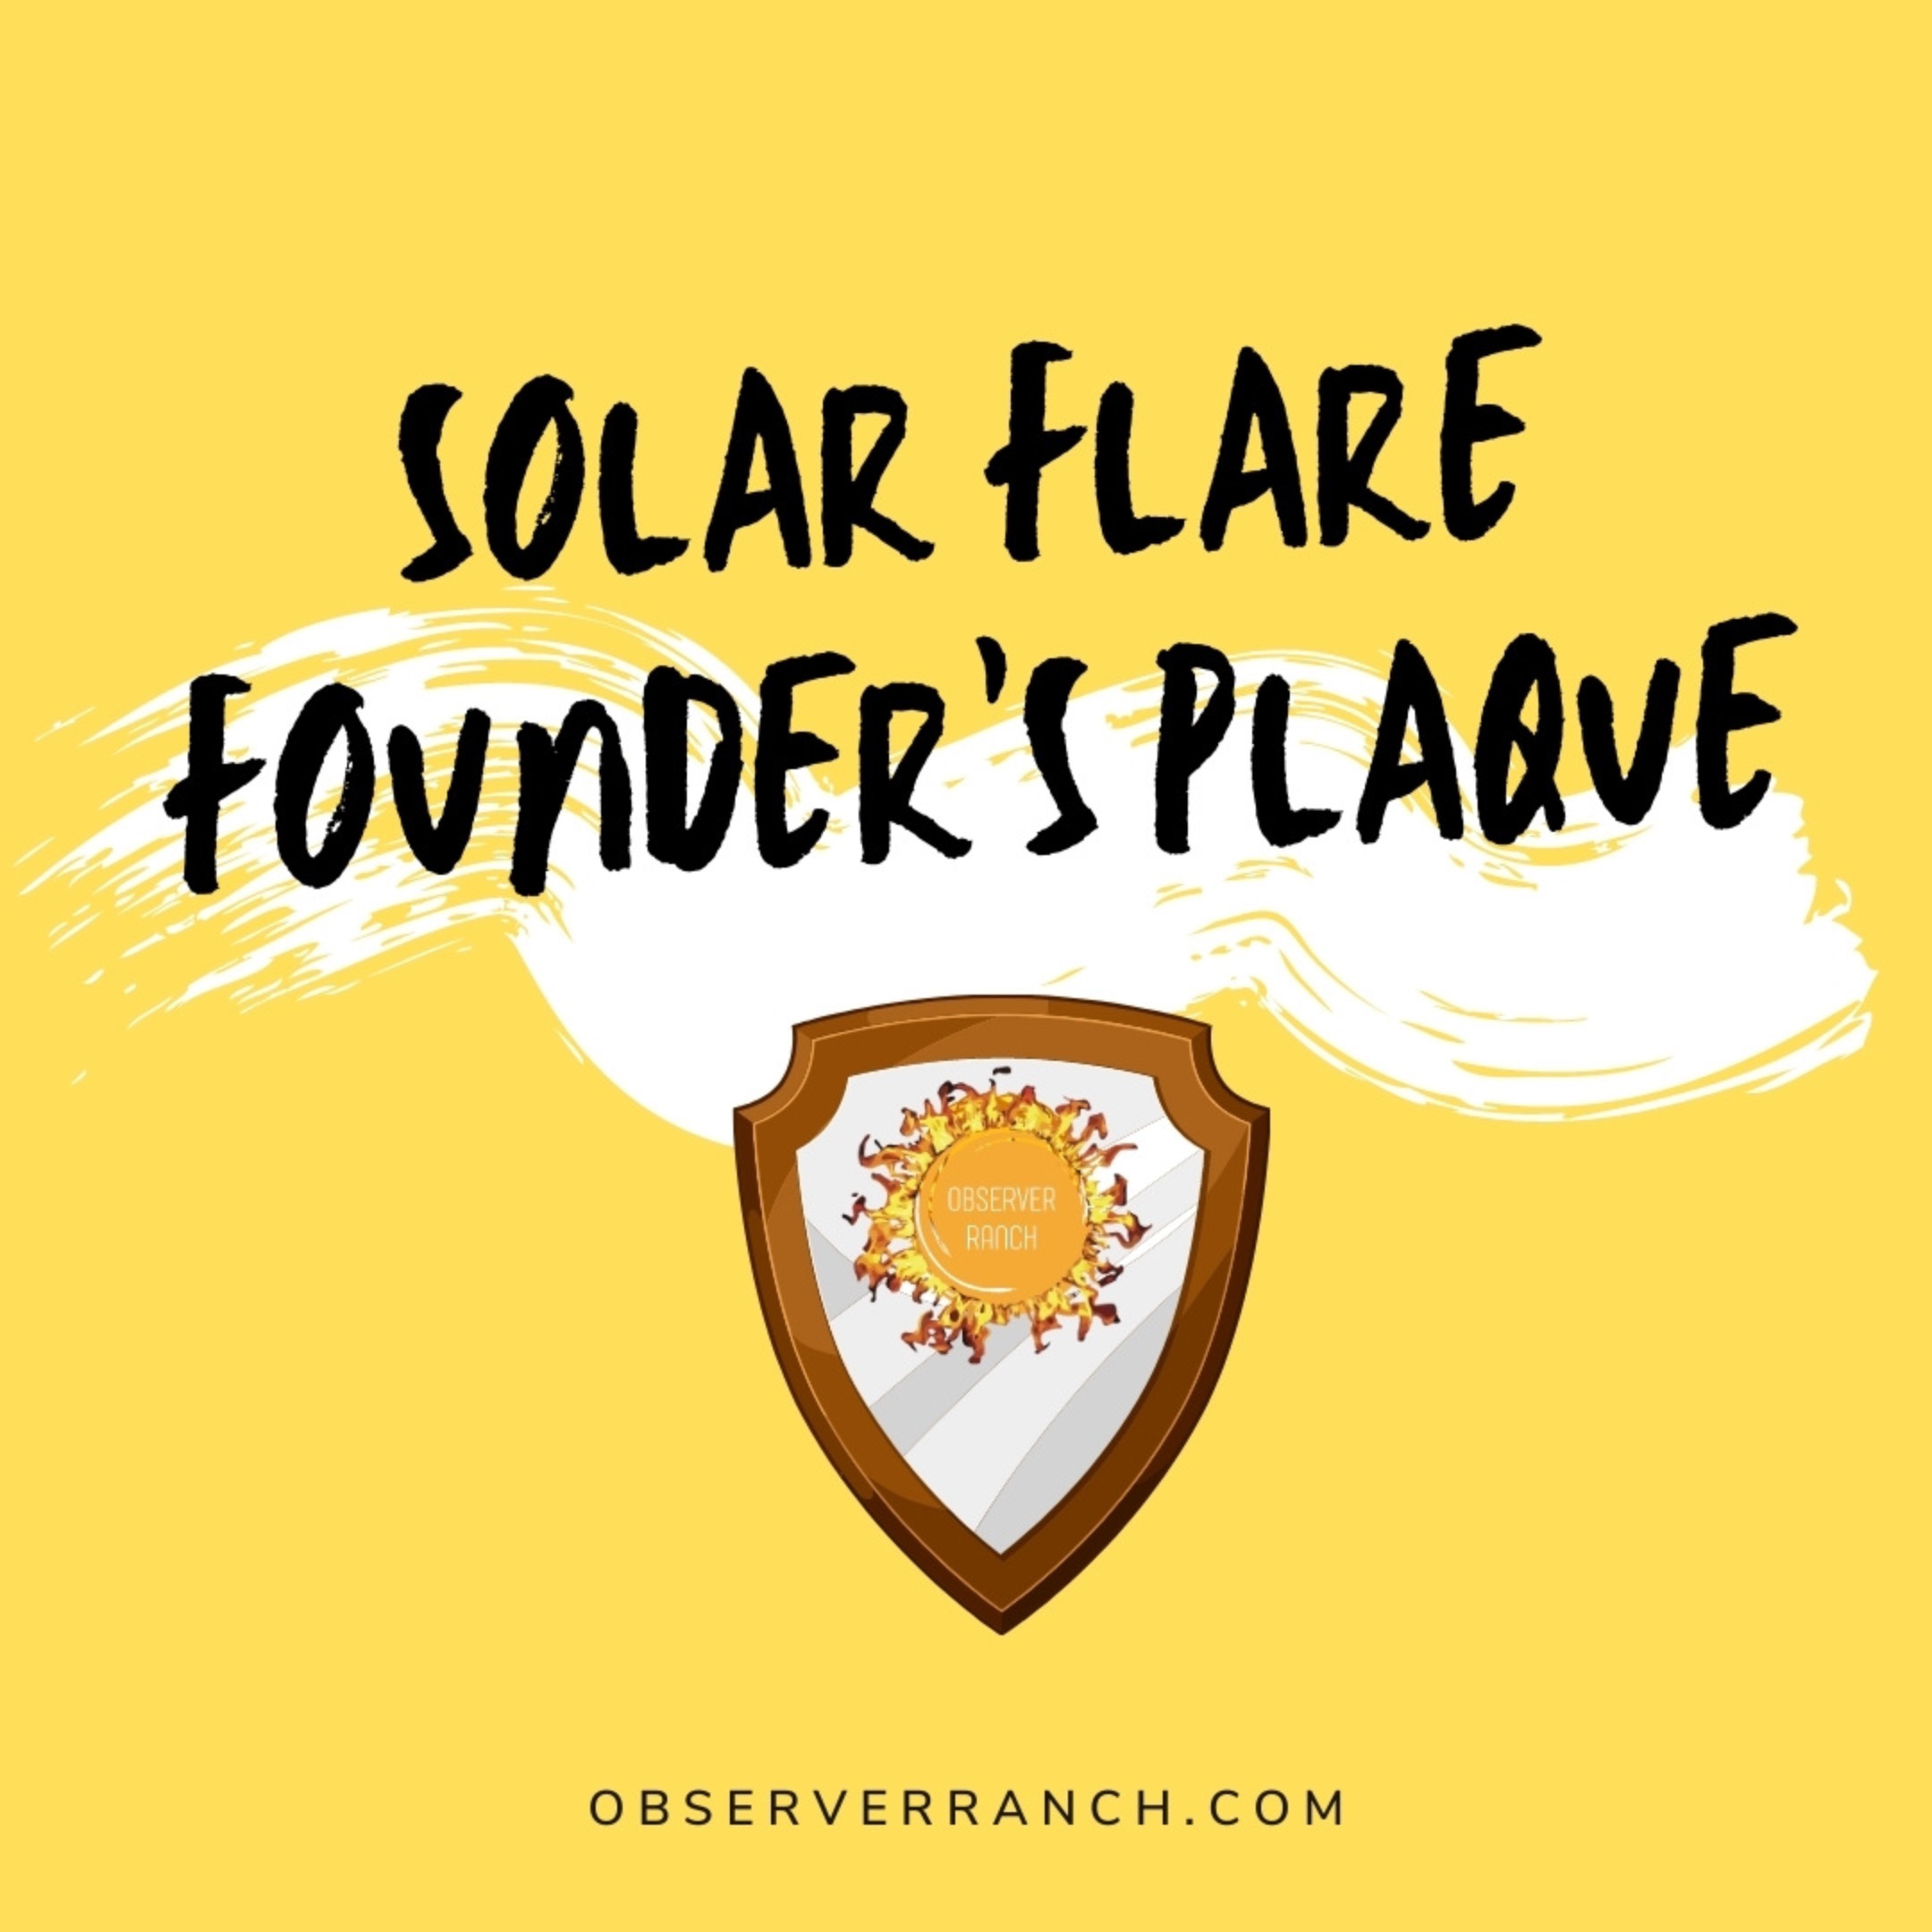 SOLAR FLARE FOUNDER'S PLAQUE